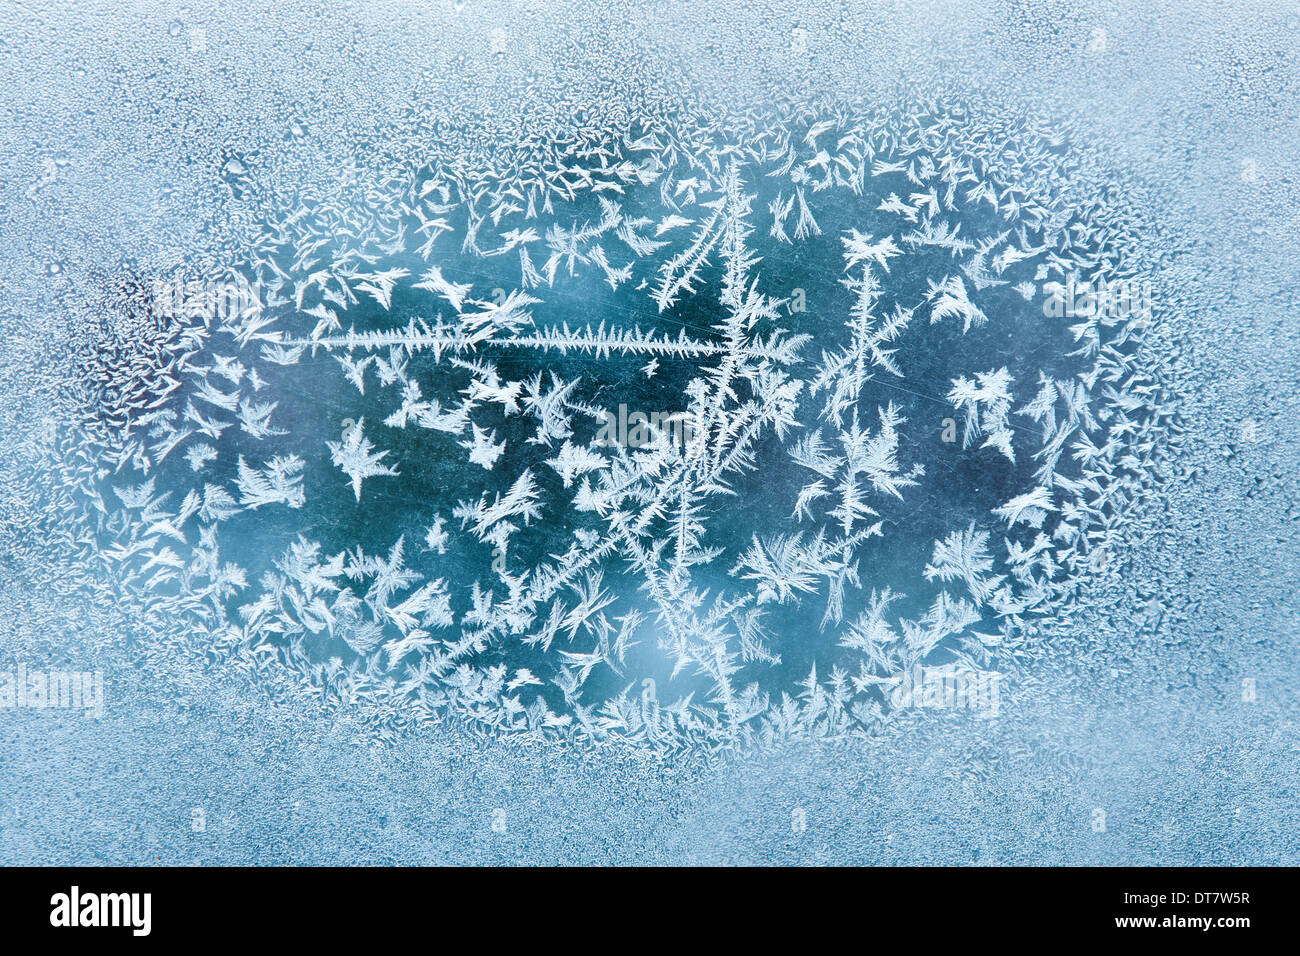 Frost on the old scratched glass, texture. Focus on center - Stock Image